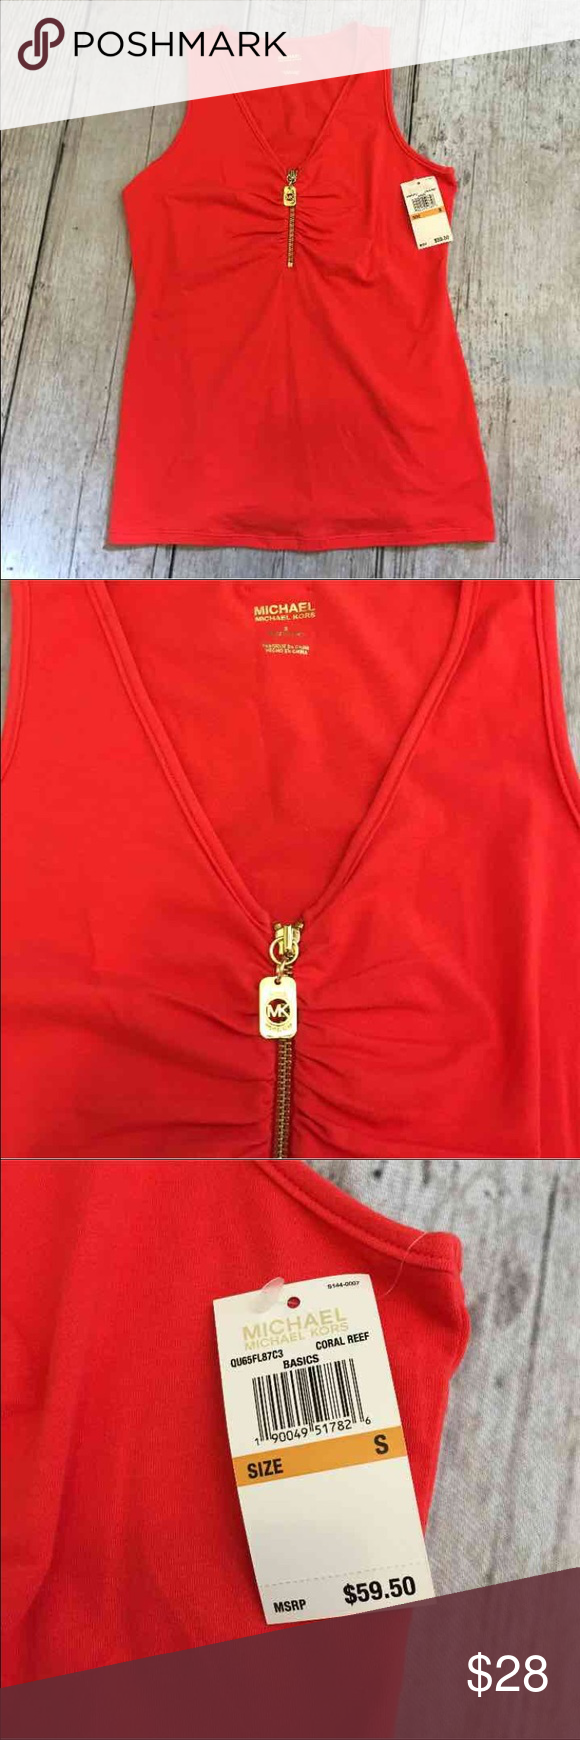 💓Michael Kors tank Coral colored Michael Kors top with gold zipper. Zipper pull has MK cut out design and the back has gold colored Michael Kors name plate . Retails at $59 Michael Kors Tops Tank Tops